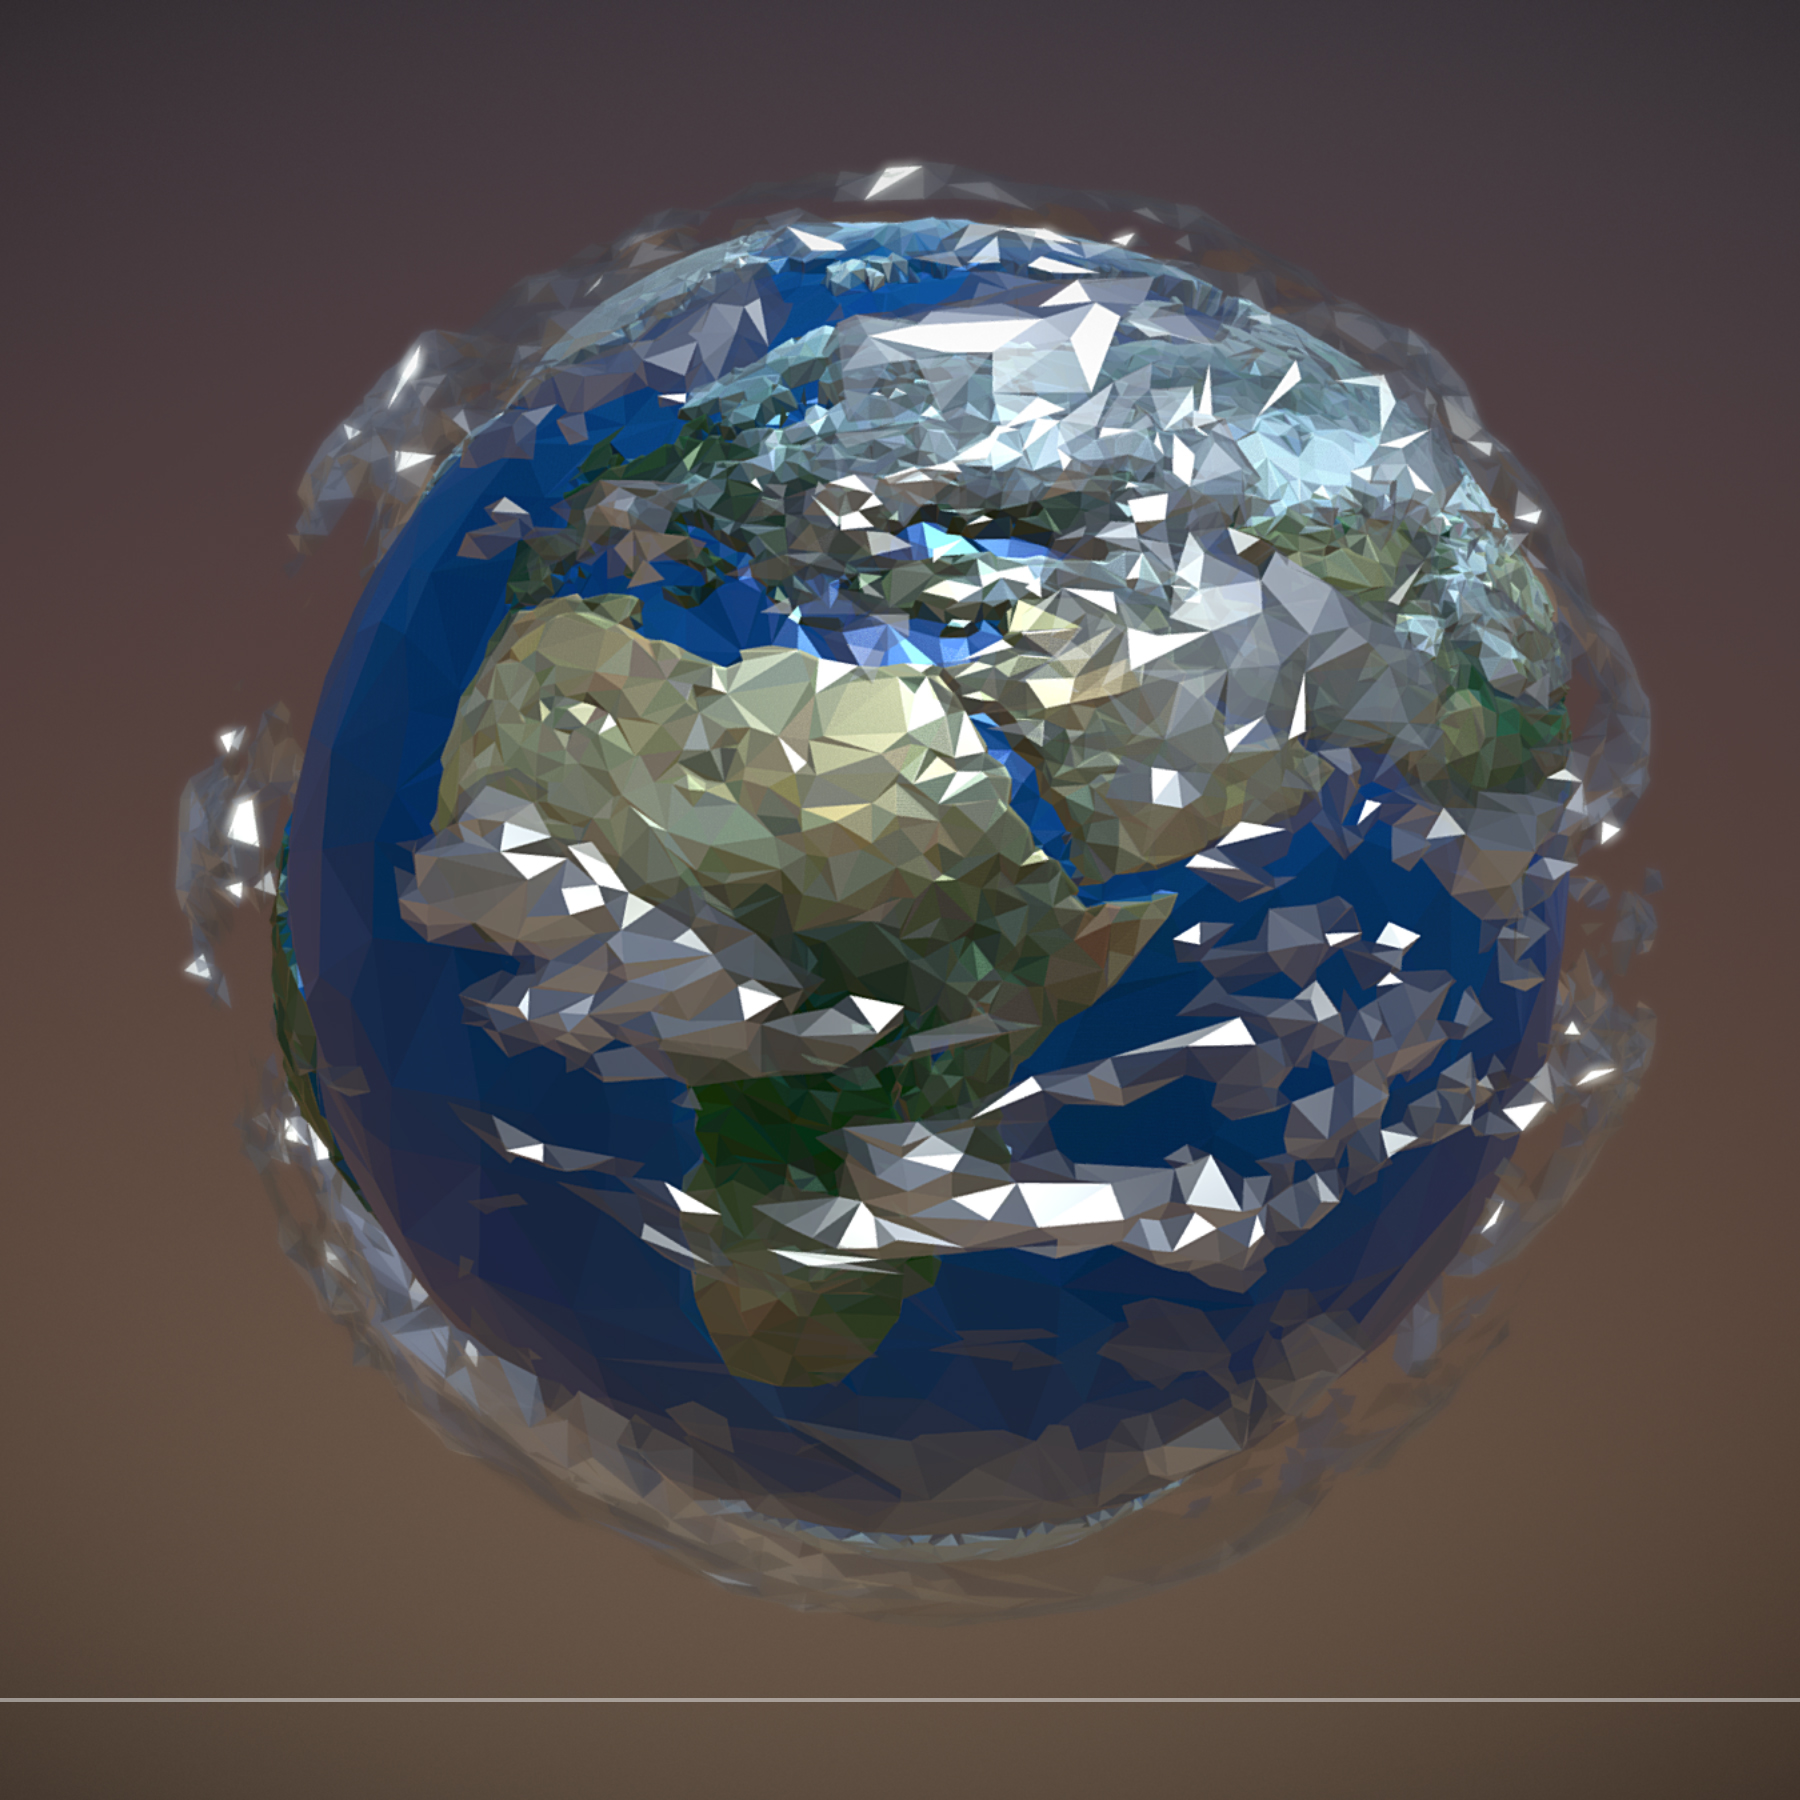 animated planet earth 3d model 3ds max fbx ma mb tga targa icb vda vst pix obj 271038